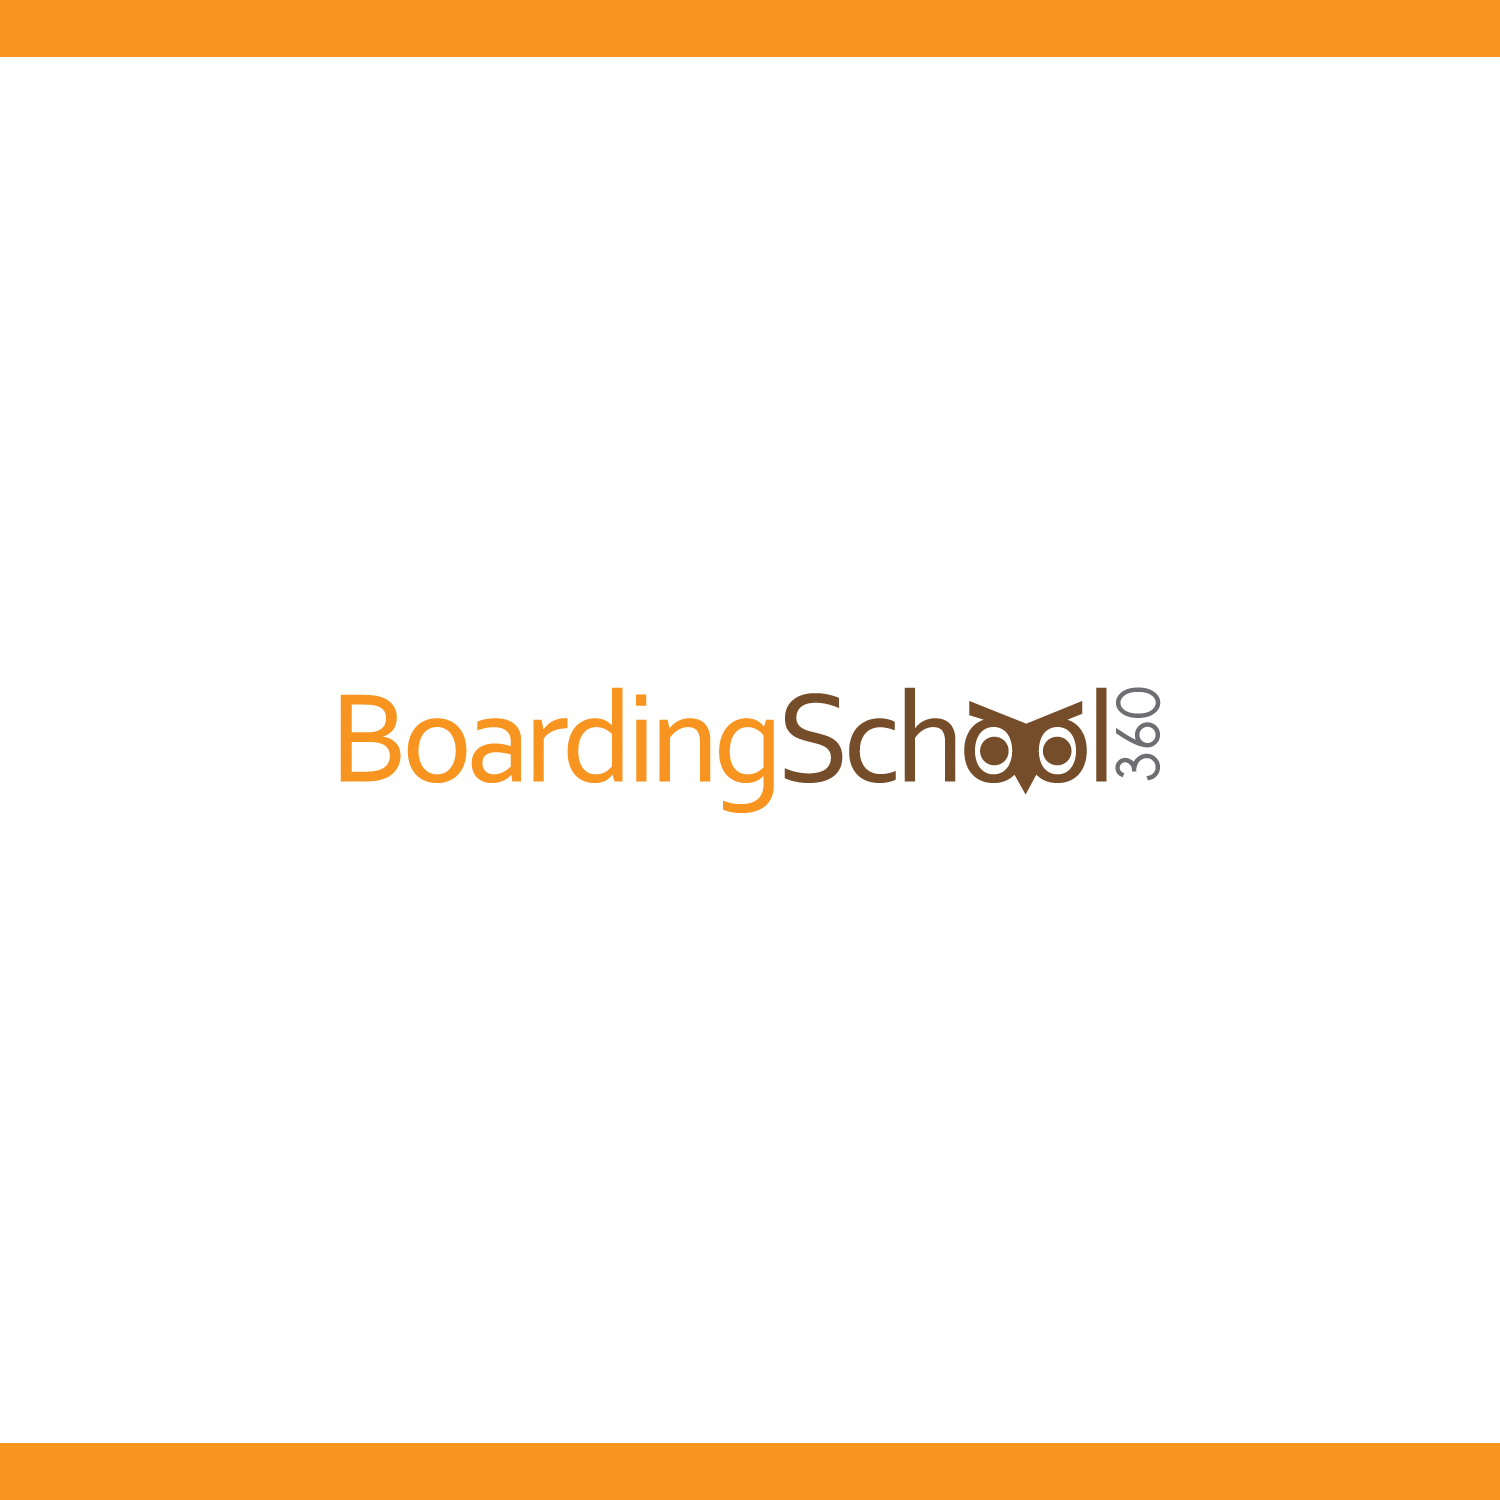 New logo wanted for Boarding School 360